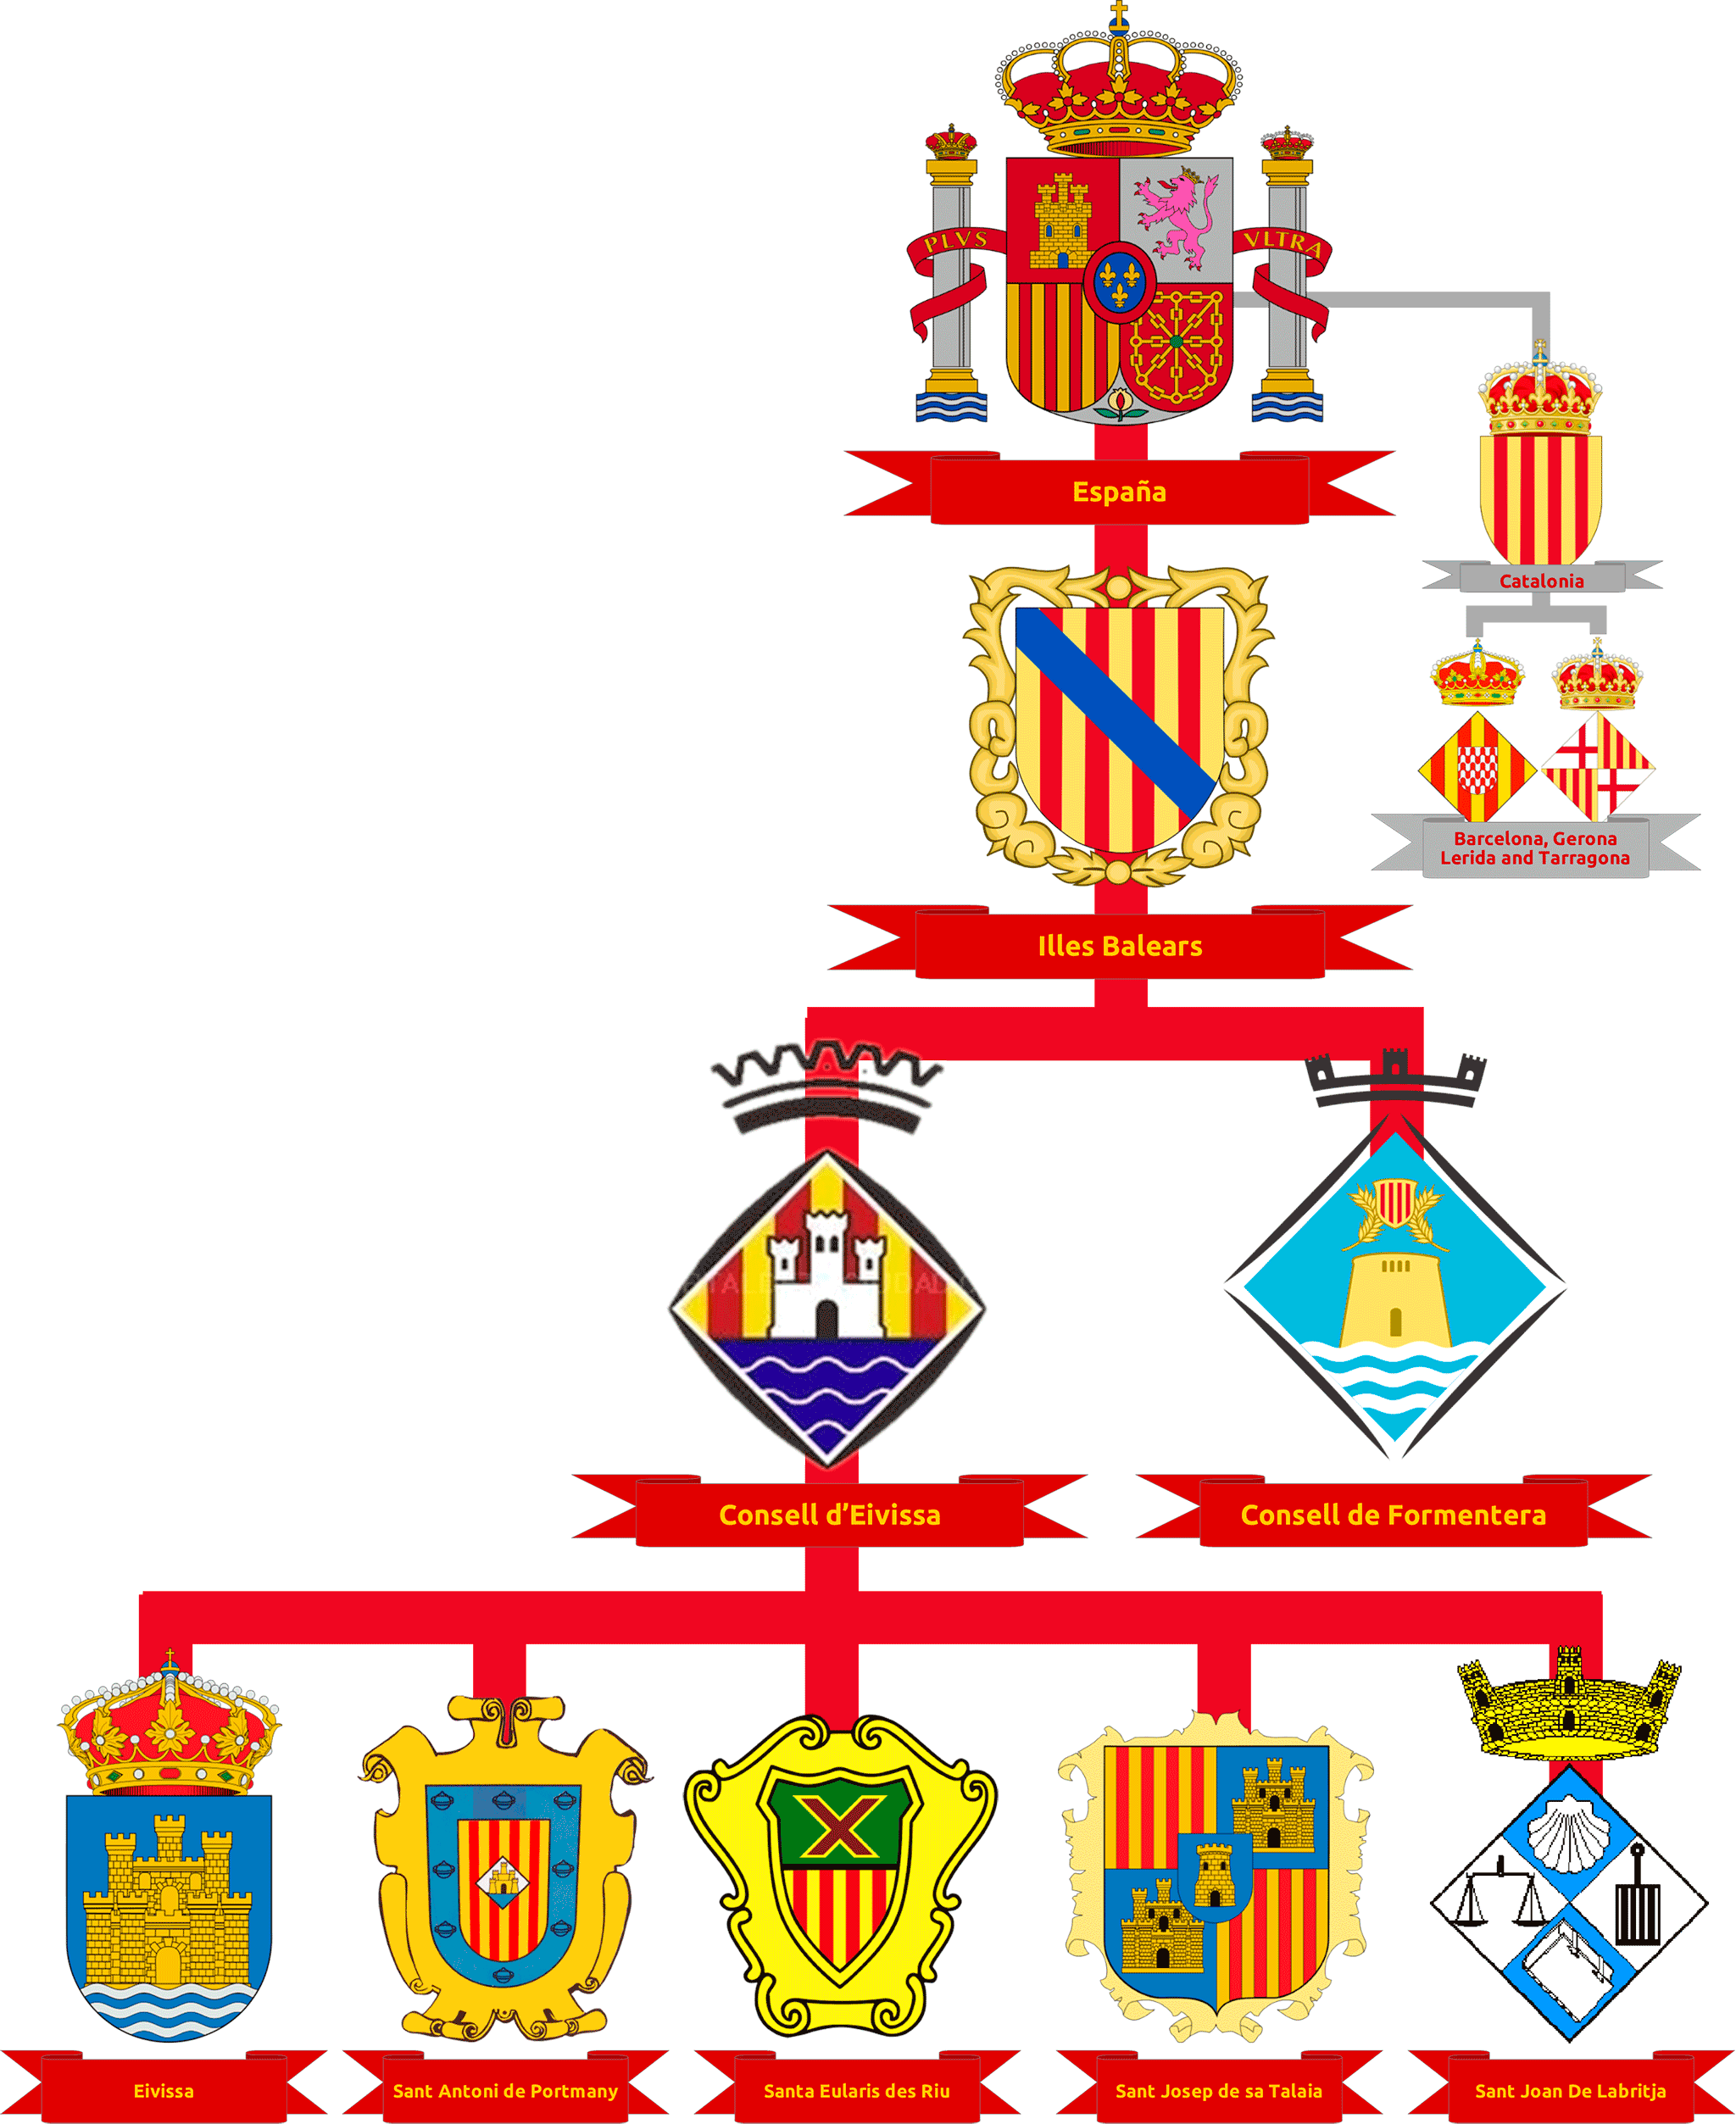 Beginner's Guide To The Spanish Political & Administrative Structure